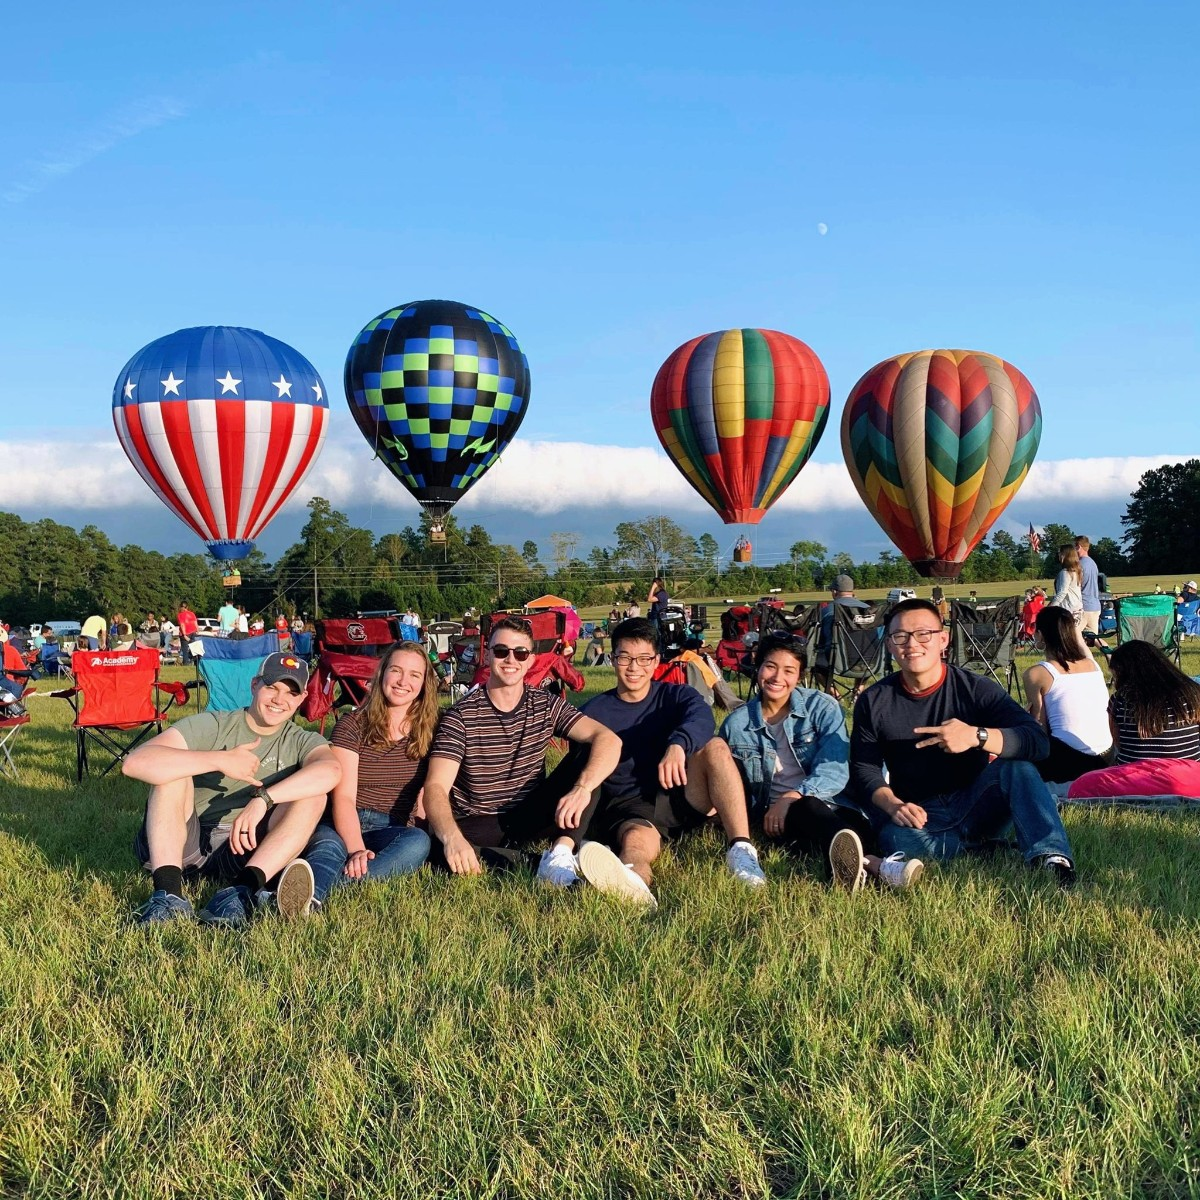 Group of friends sitting on a grassy hill with hot air balloons in the background